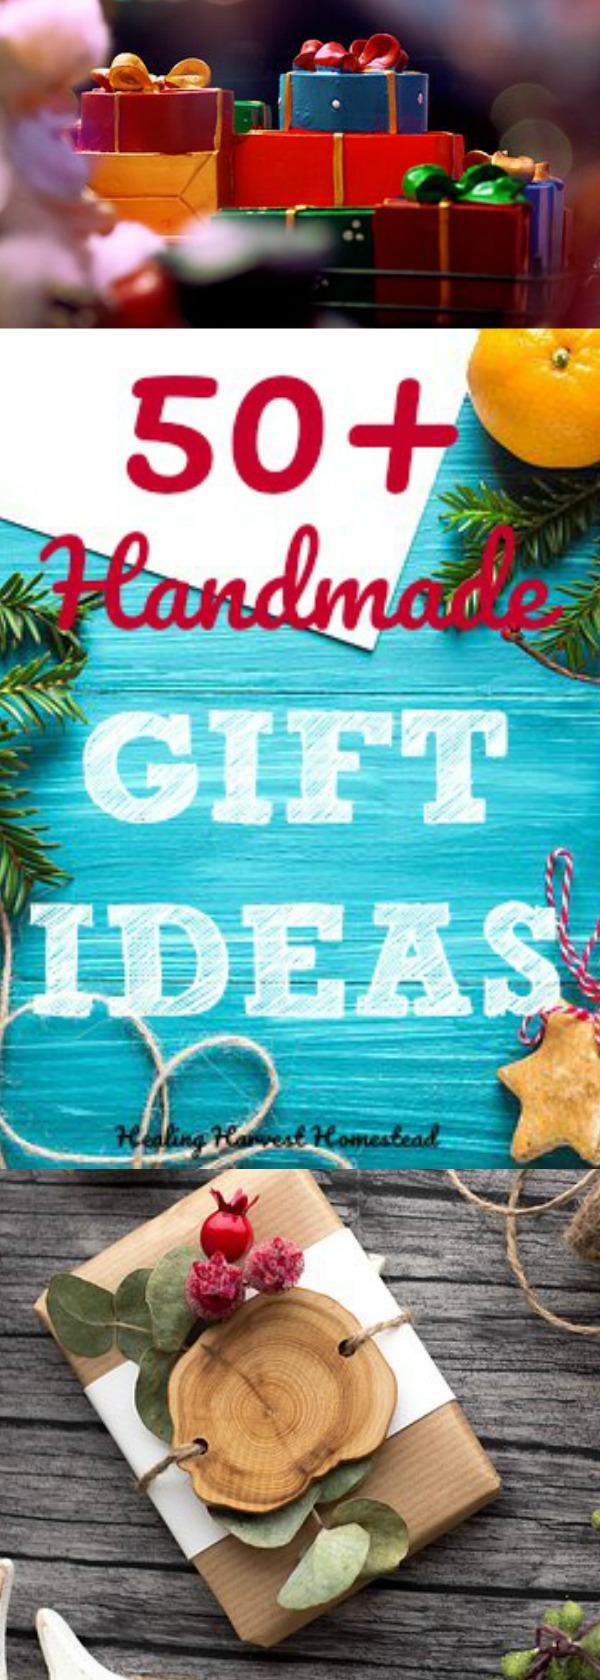 50+ Handmade Gift Ideas and recipes! We're edging into November, so it's time to put your gift giving plan together. If you are making handmade items, and you want to focus on natural gifts, you must click through to check out these amazing ideas! #handmadegift #naturalgift #howtomake #gift #holidaygift #healingharvesthomestead